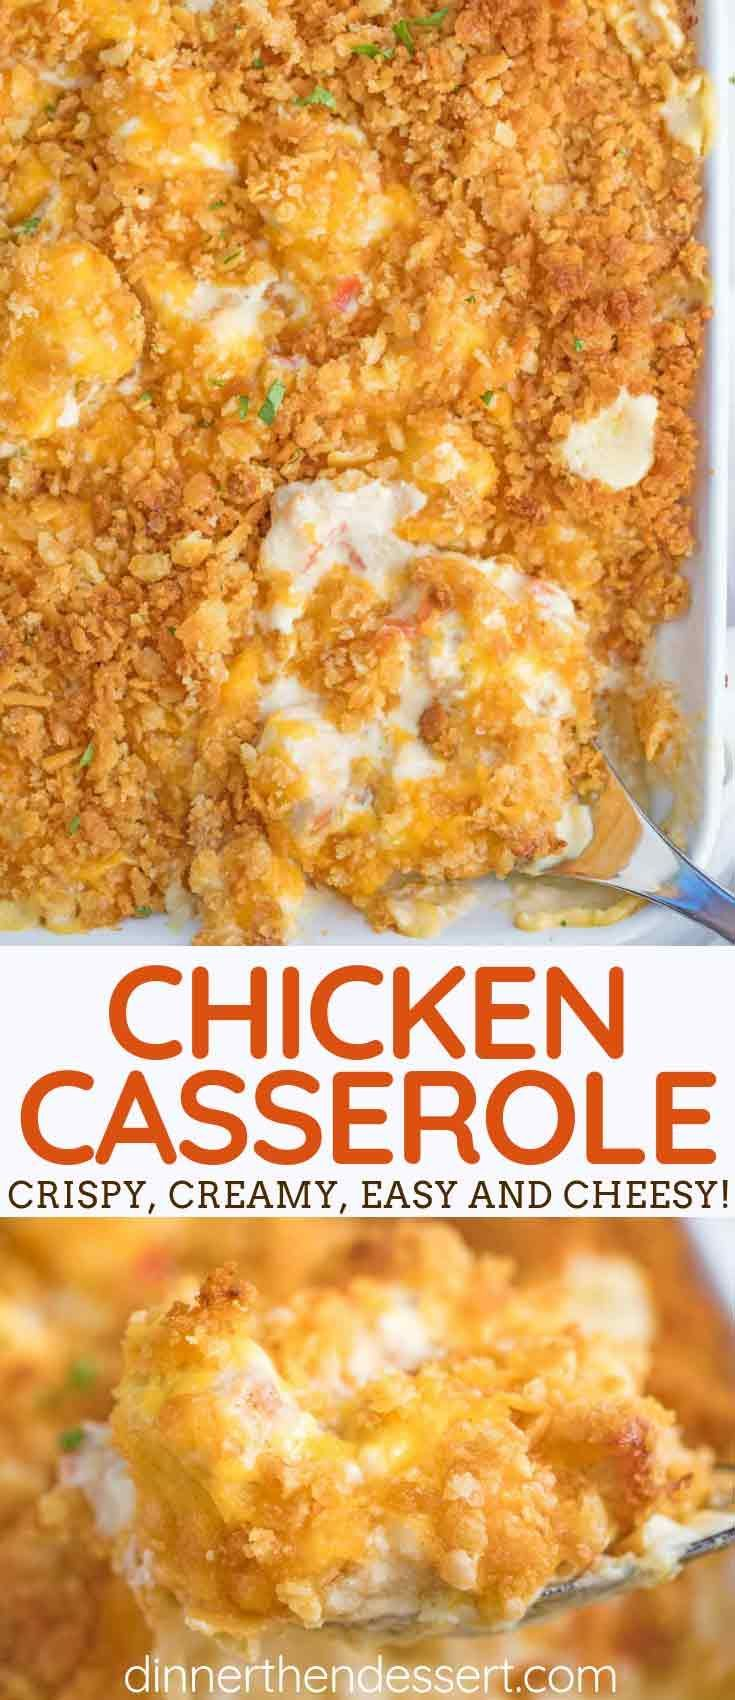 Easy Chicken Casserole is creamy and savory, made with chicken, onion, and bell peppers in a seasoned sauce and topped with Ritz crackers and cheddar cheese, perfectly cooked in 45 minutes!